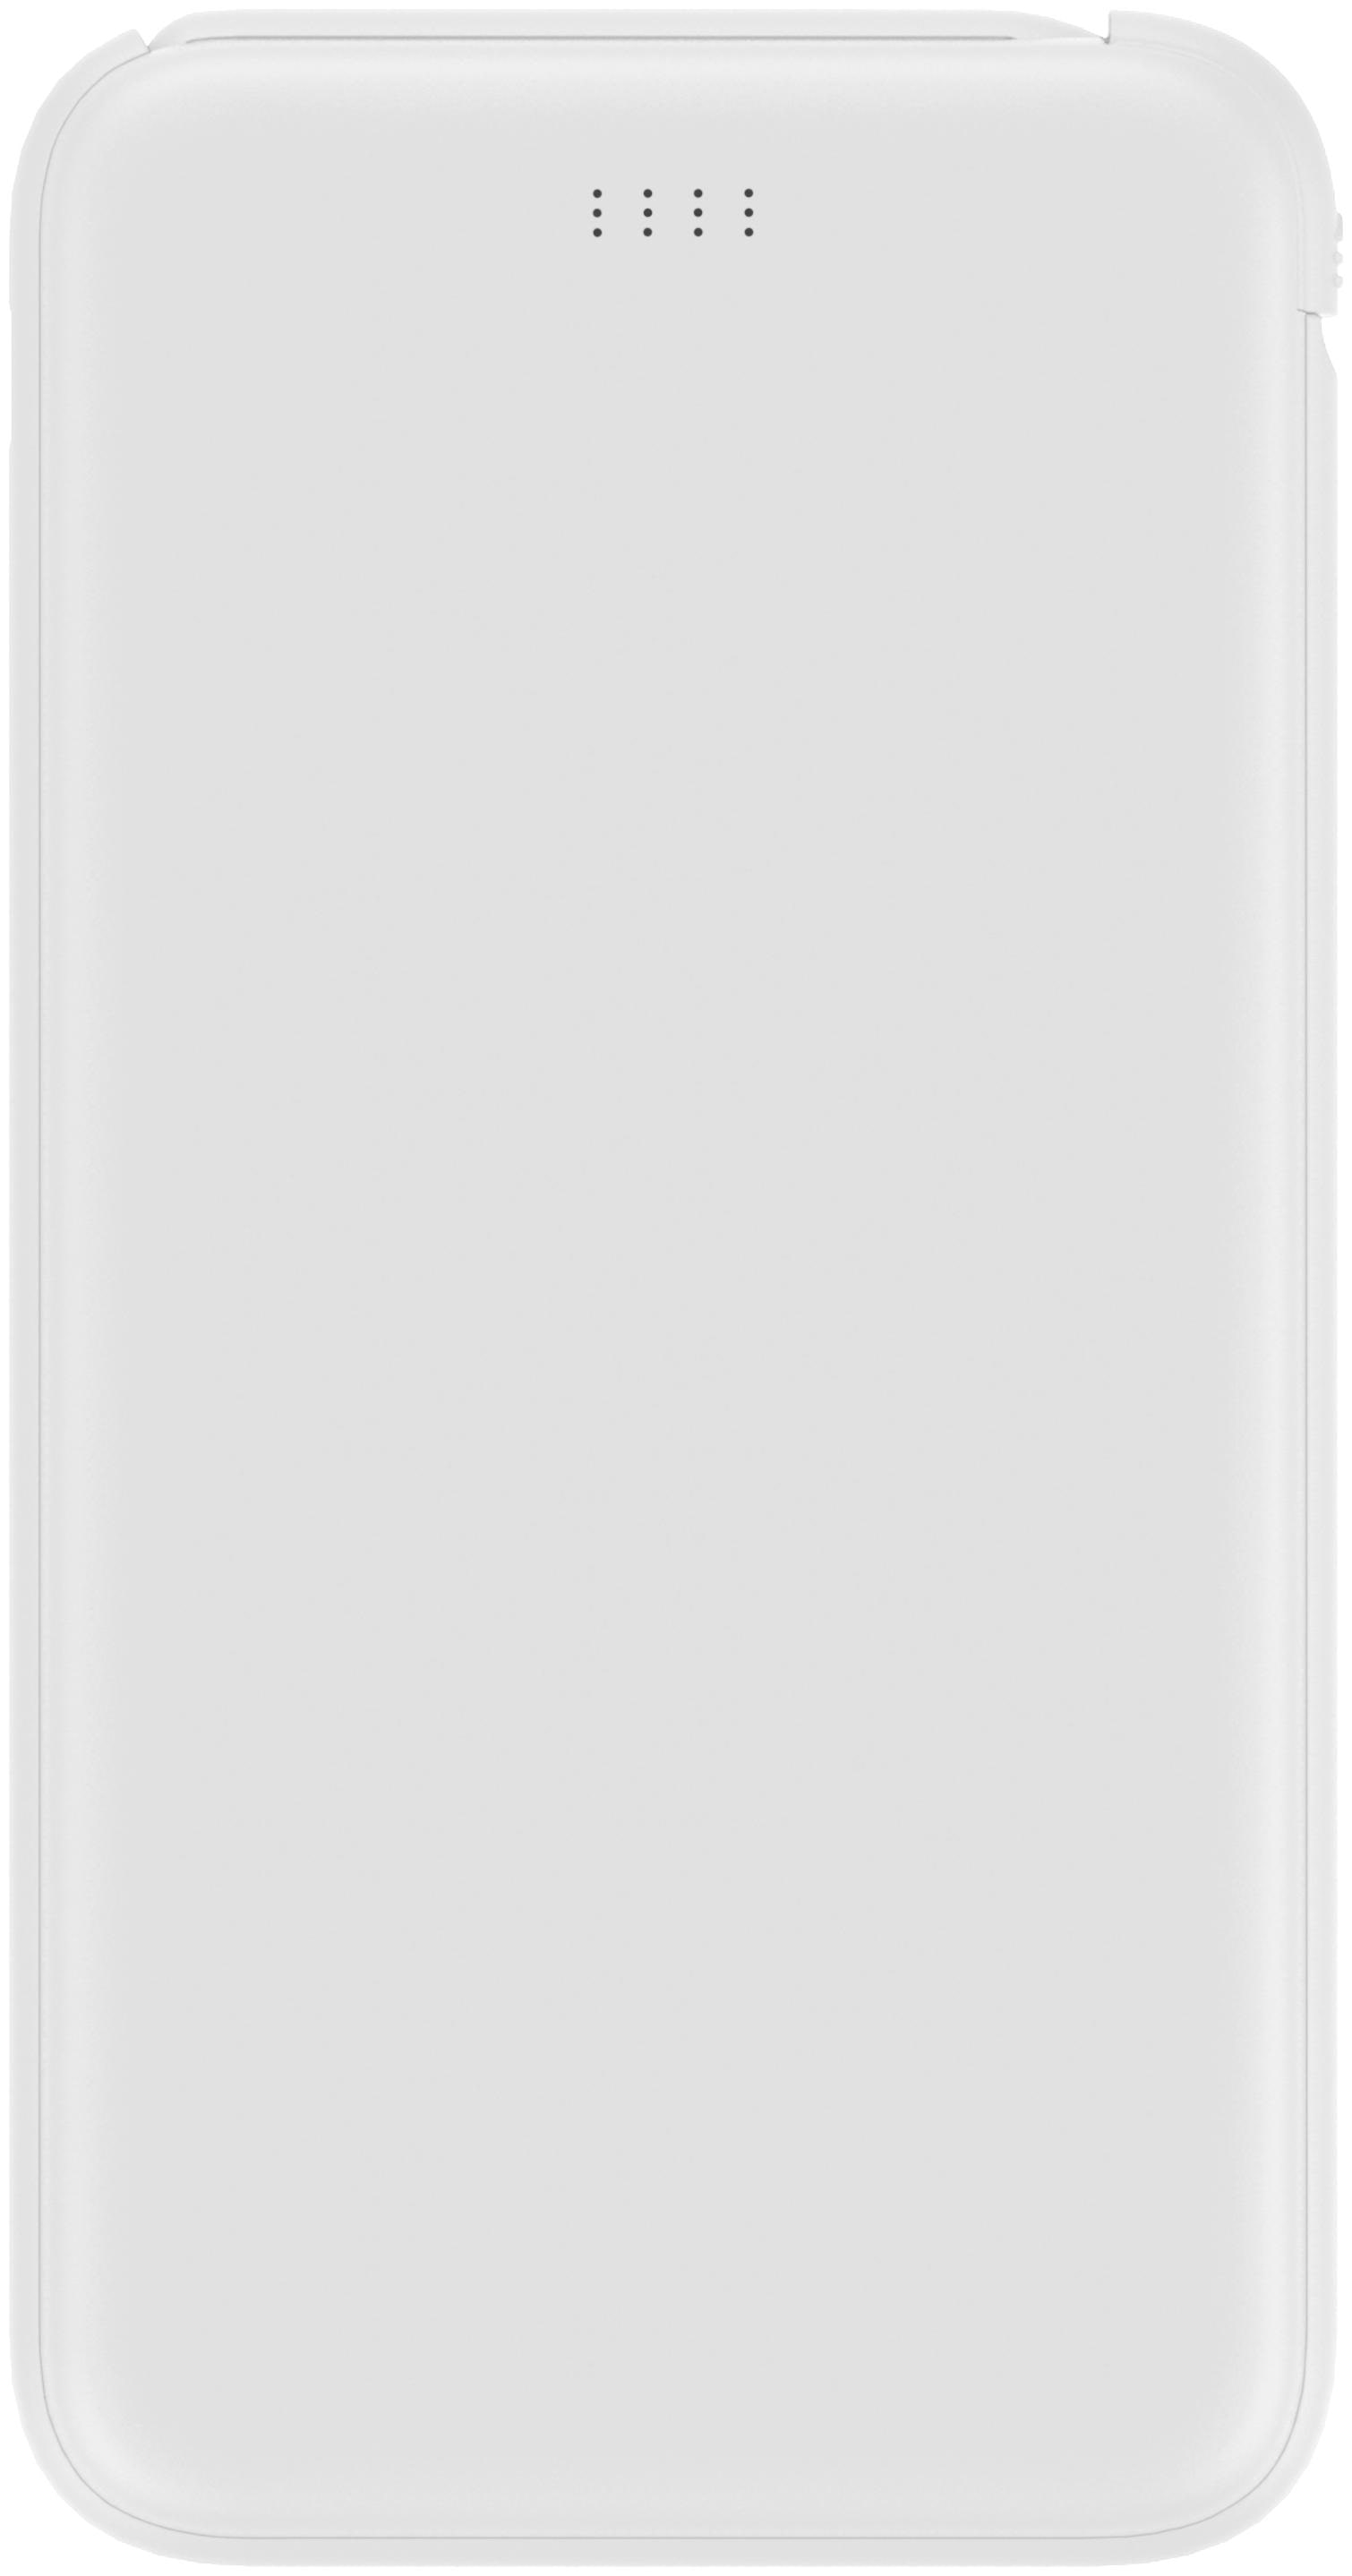 Smartplay Power bank 10000 mAh   1012 White Colour Lithium Polymer battery with Inbuilt Cable